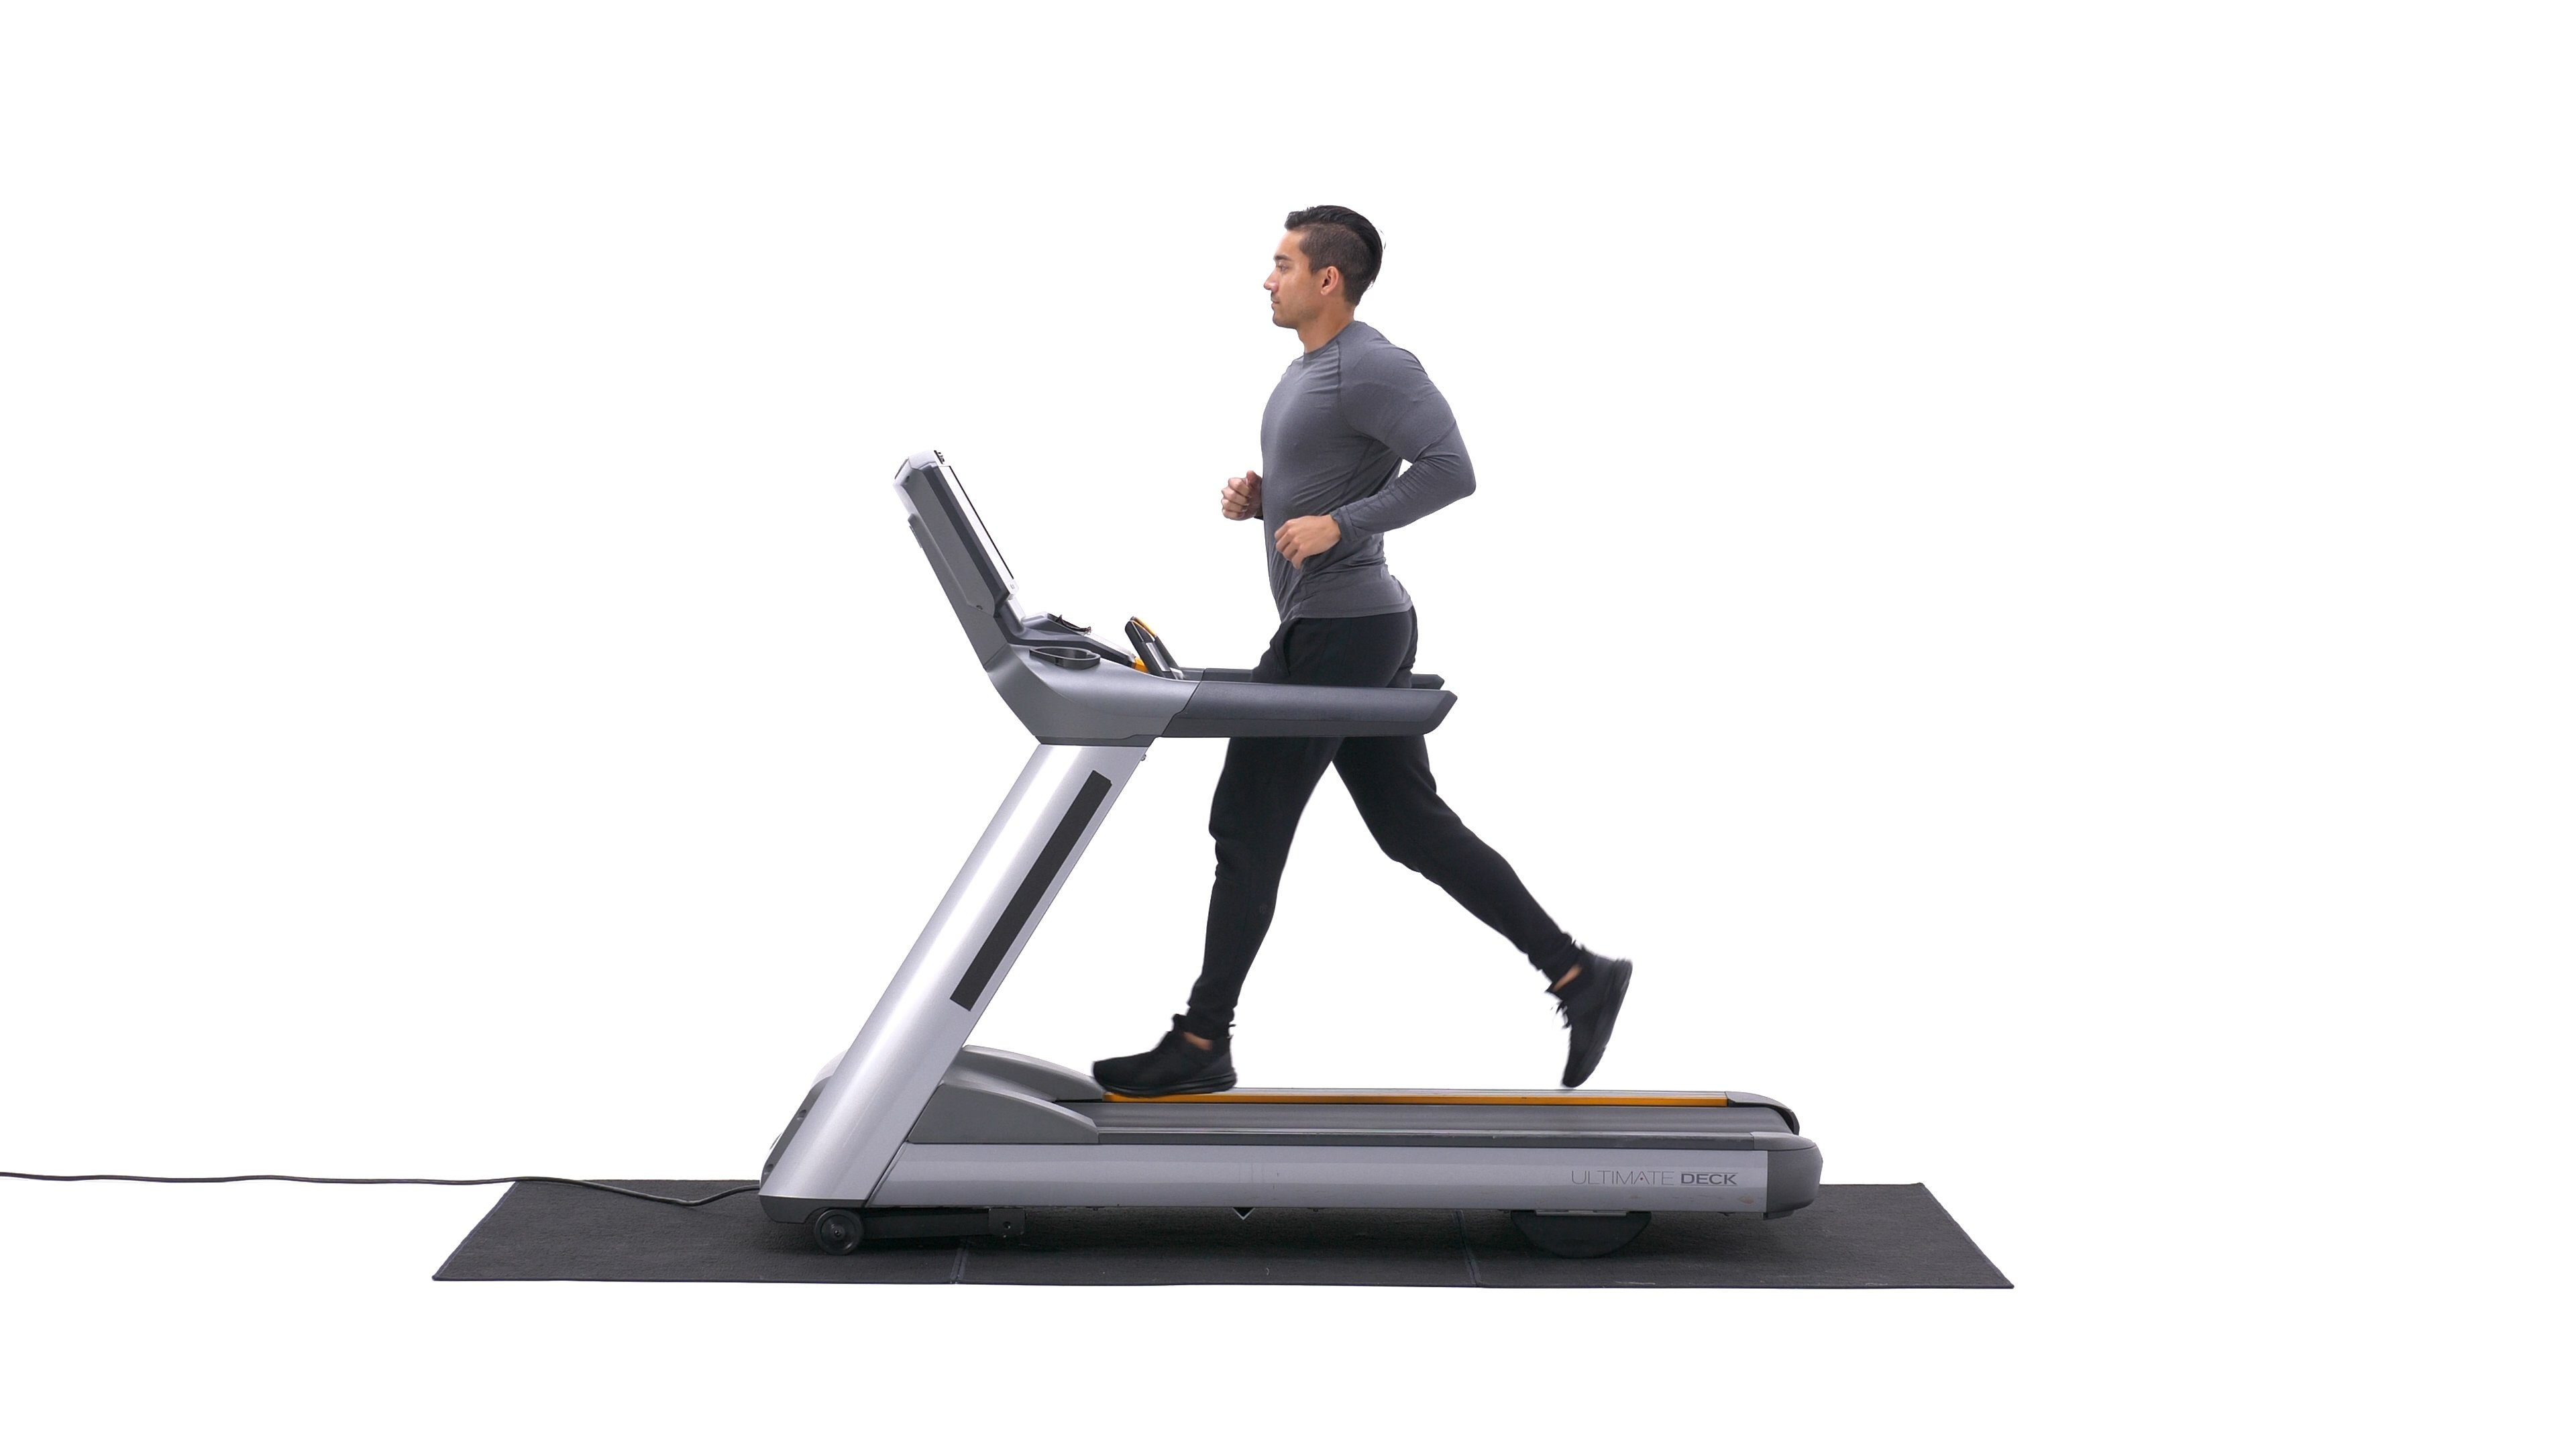 Treadmill running image